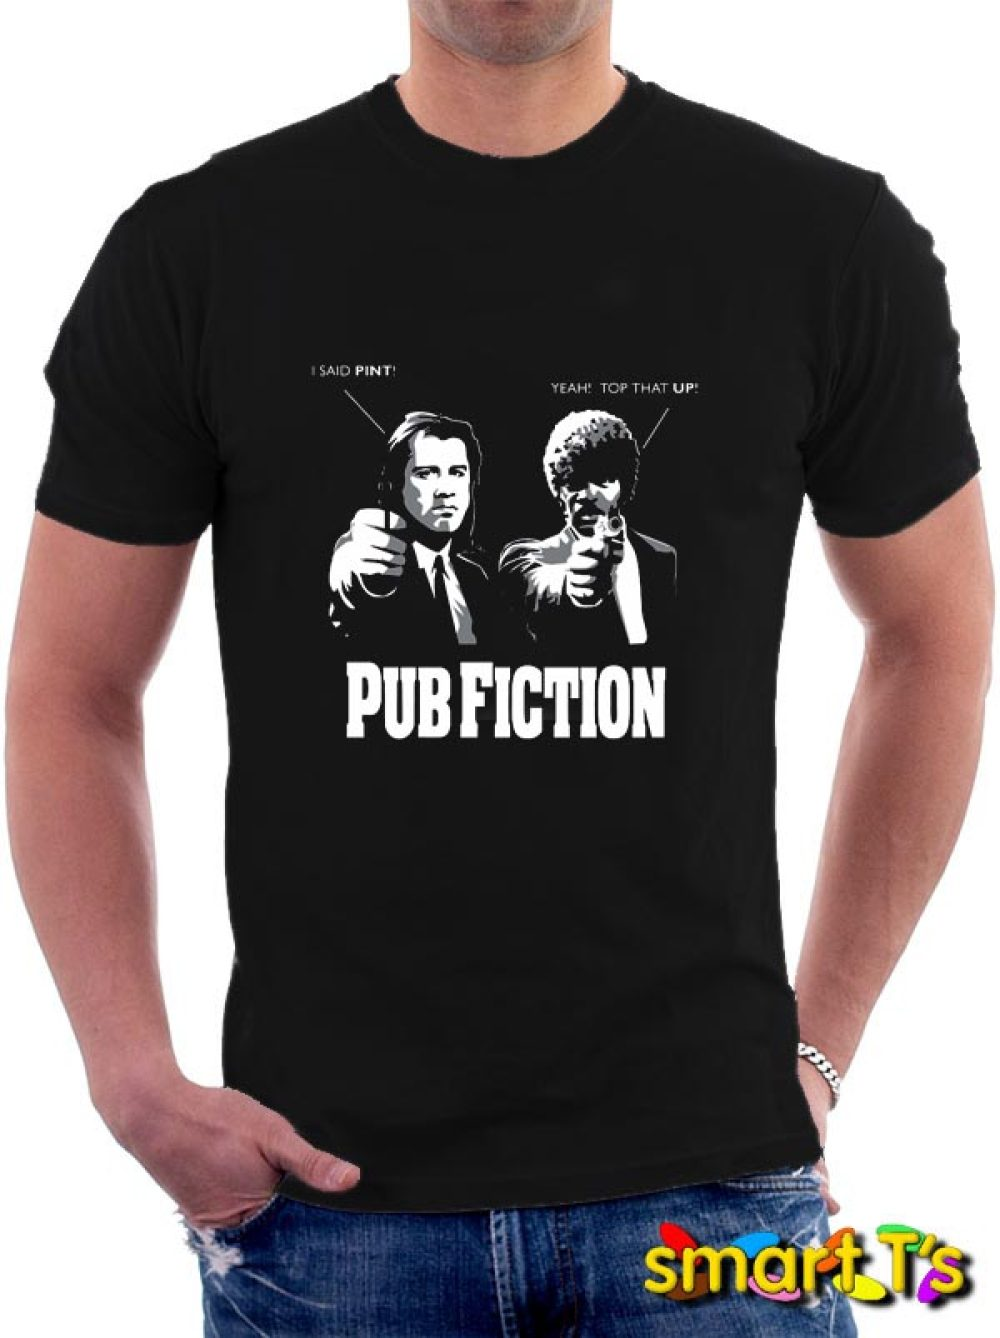 Pub Fiction T Shirt